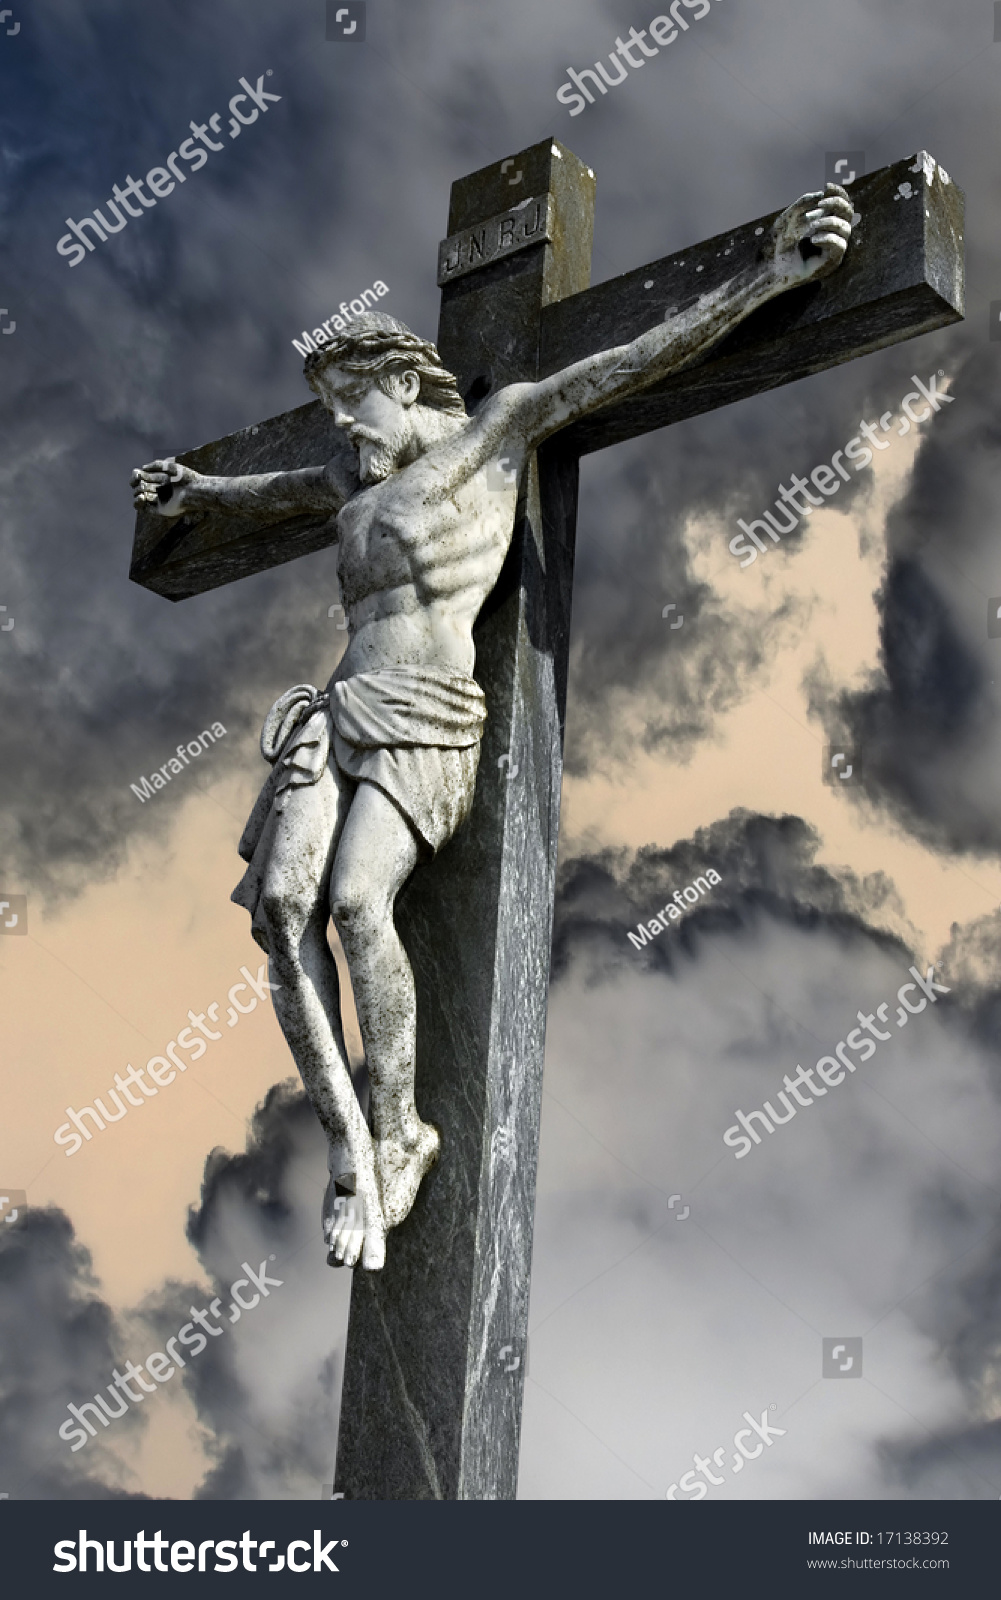 photocomposition jesus christ dying on cross stock illustration